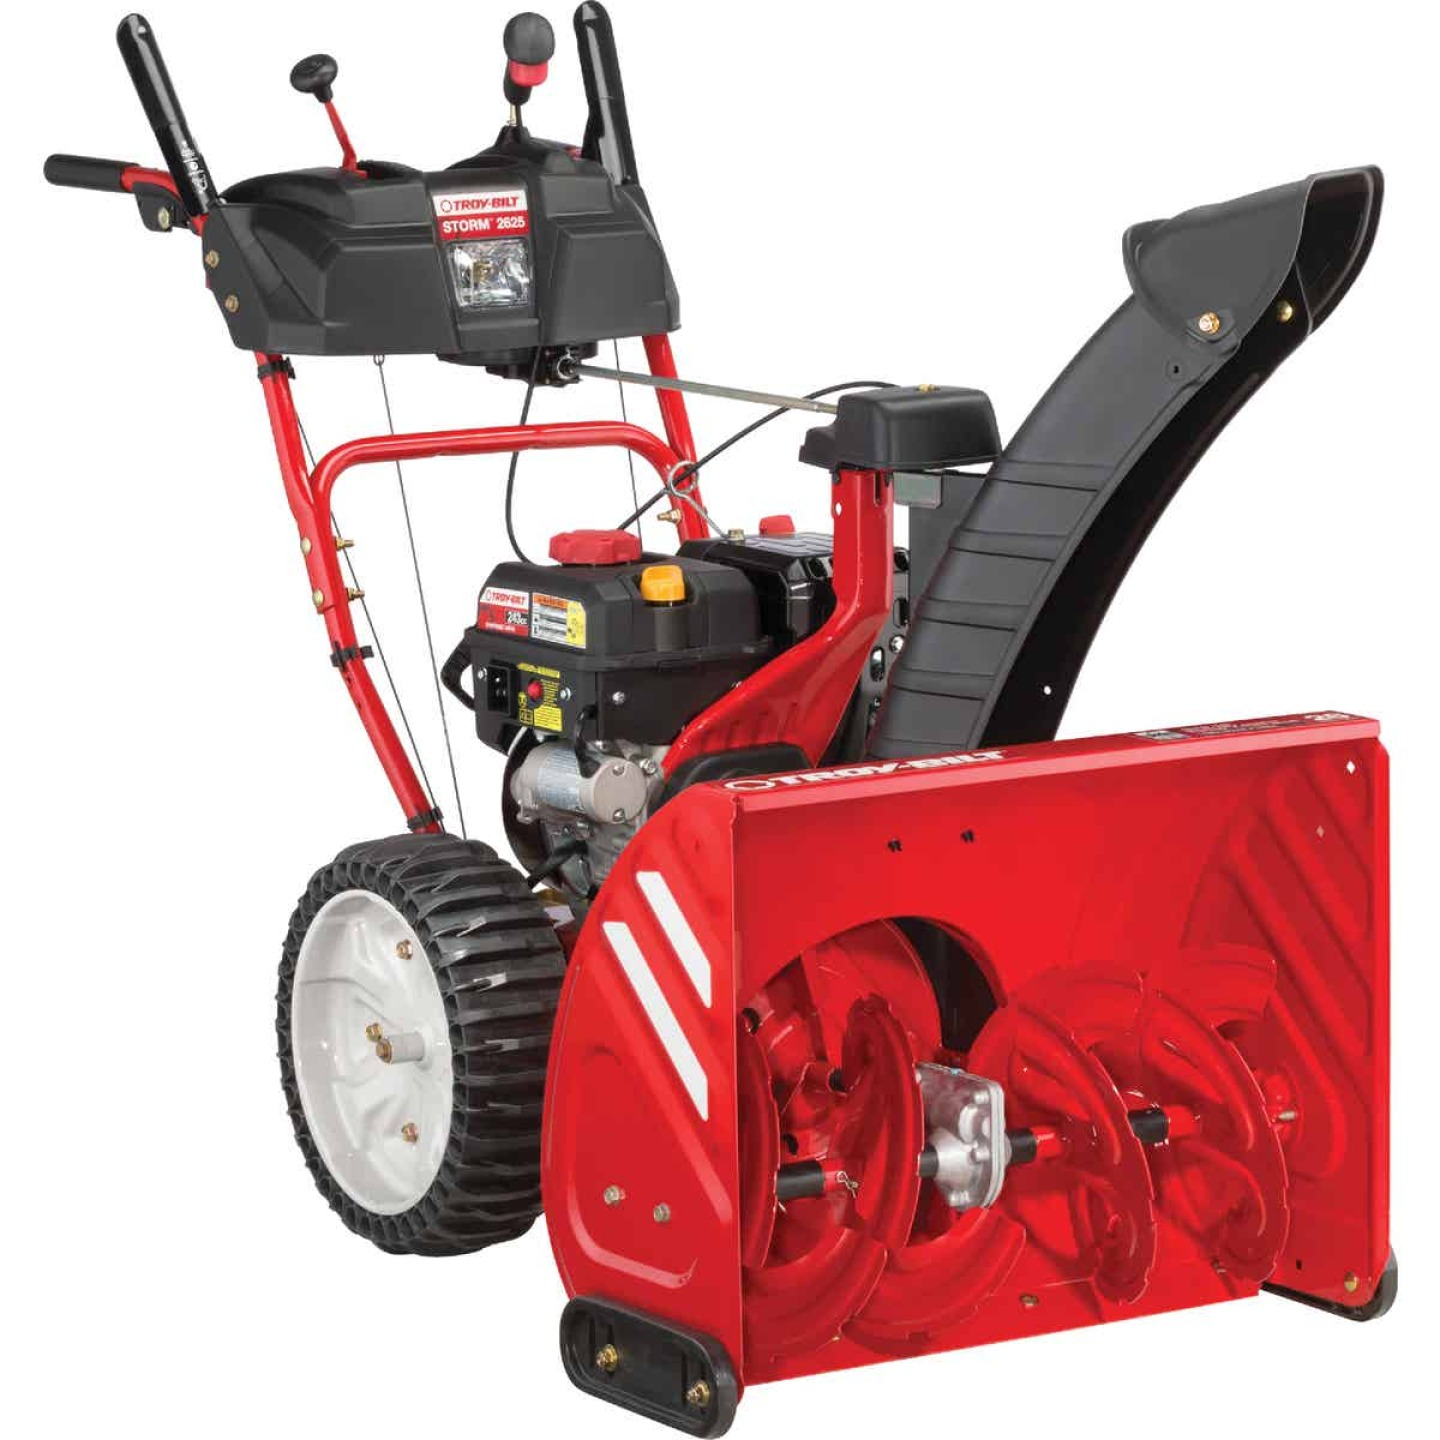 Troy-Bilt Storm 26 In. 243cc 2-Stage Gas Snow Blower Image 1